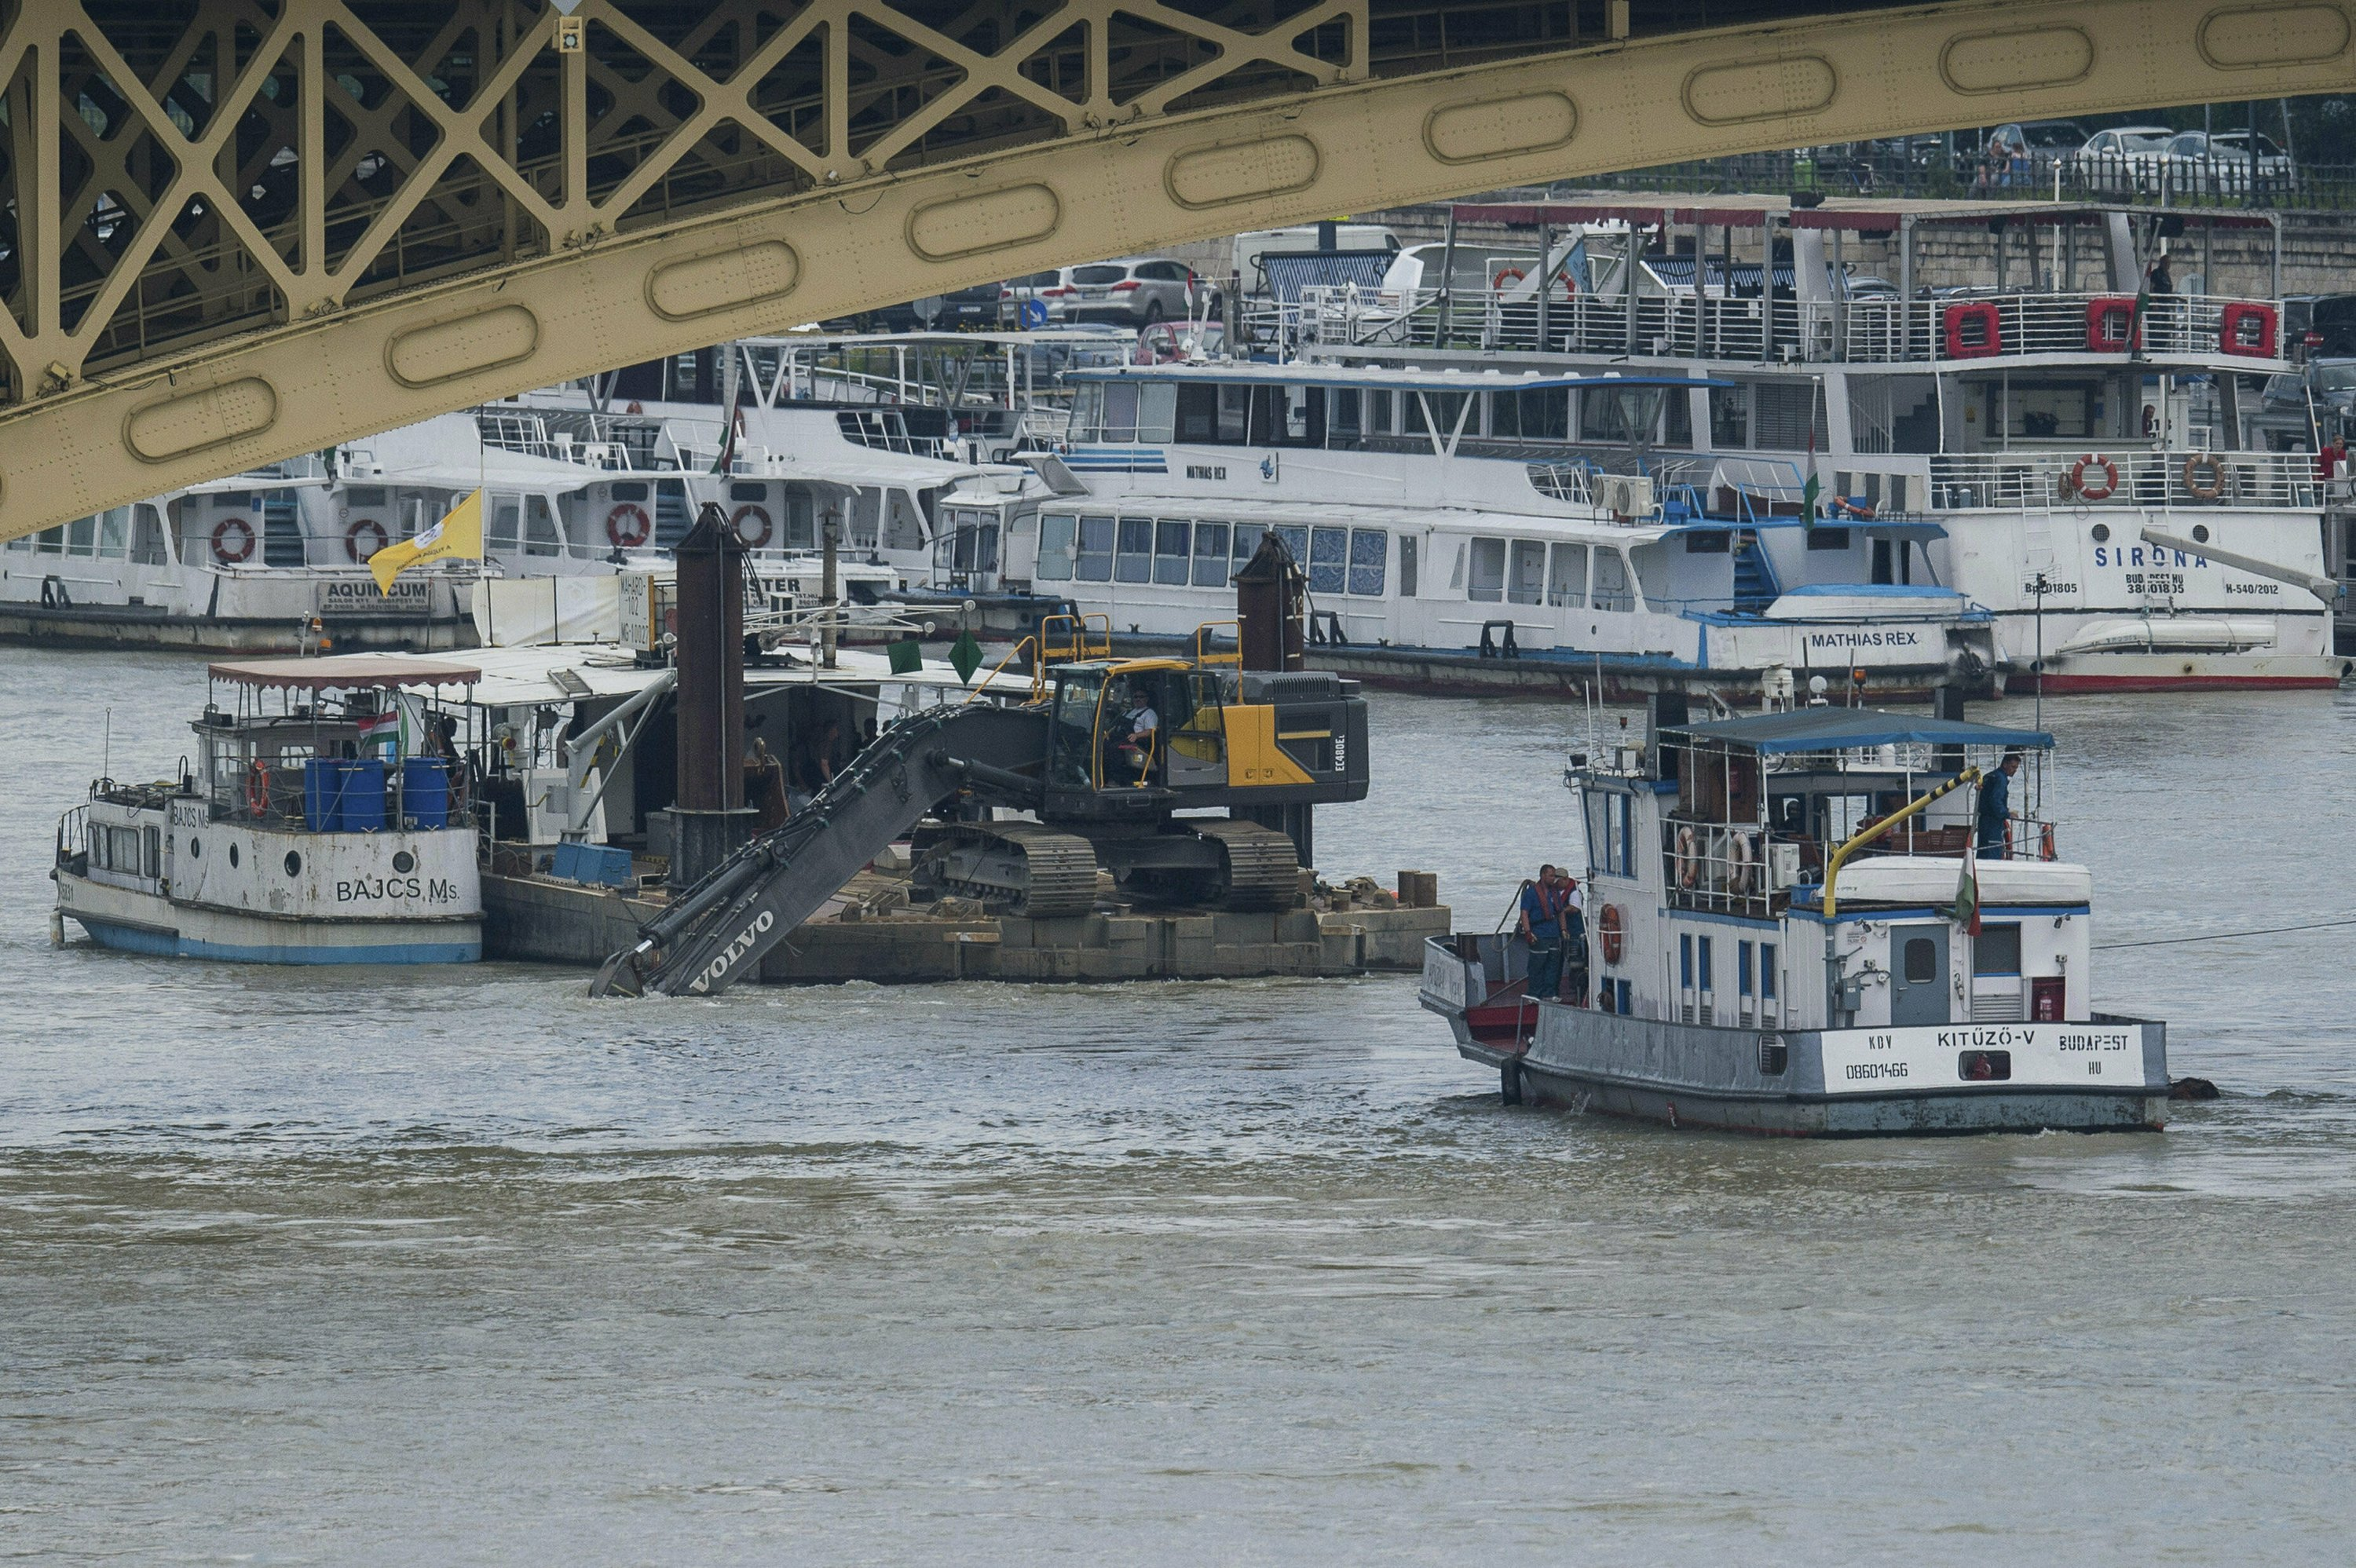 Hungary: Death toll rises to 19 in Danube tour boat crash